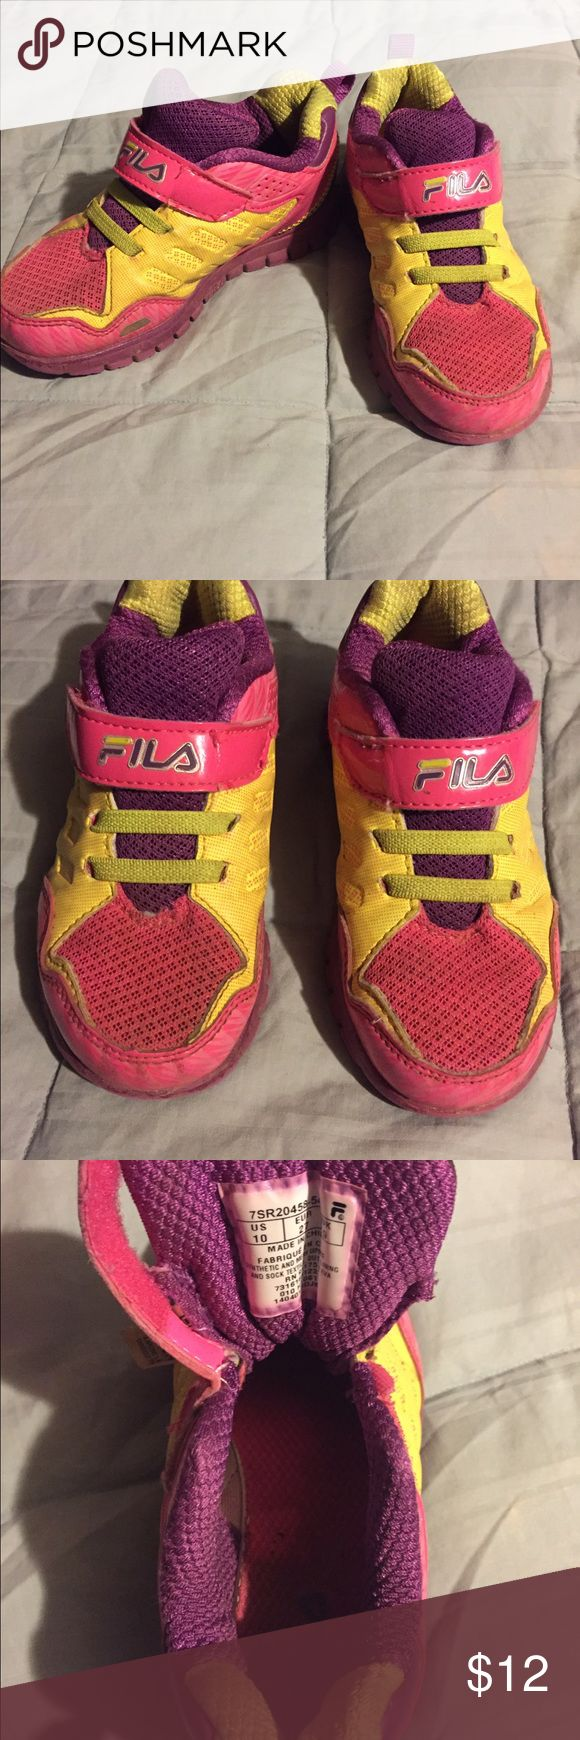 Girls tennis shoes Toddler girls size 10 FILA tennis shoes. Worn, but still has a lot of life left. Fila Shoes Sneakers